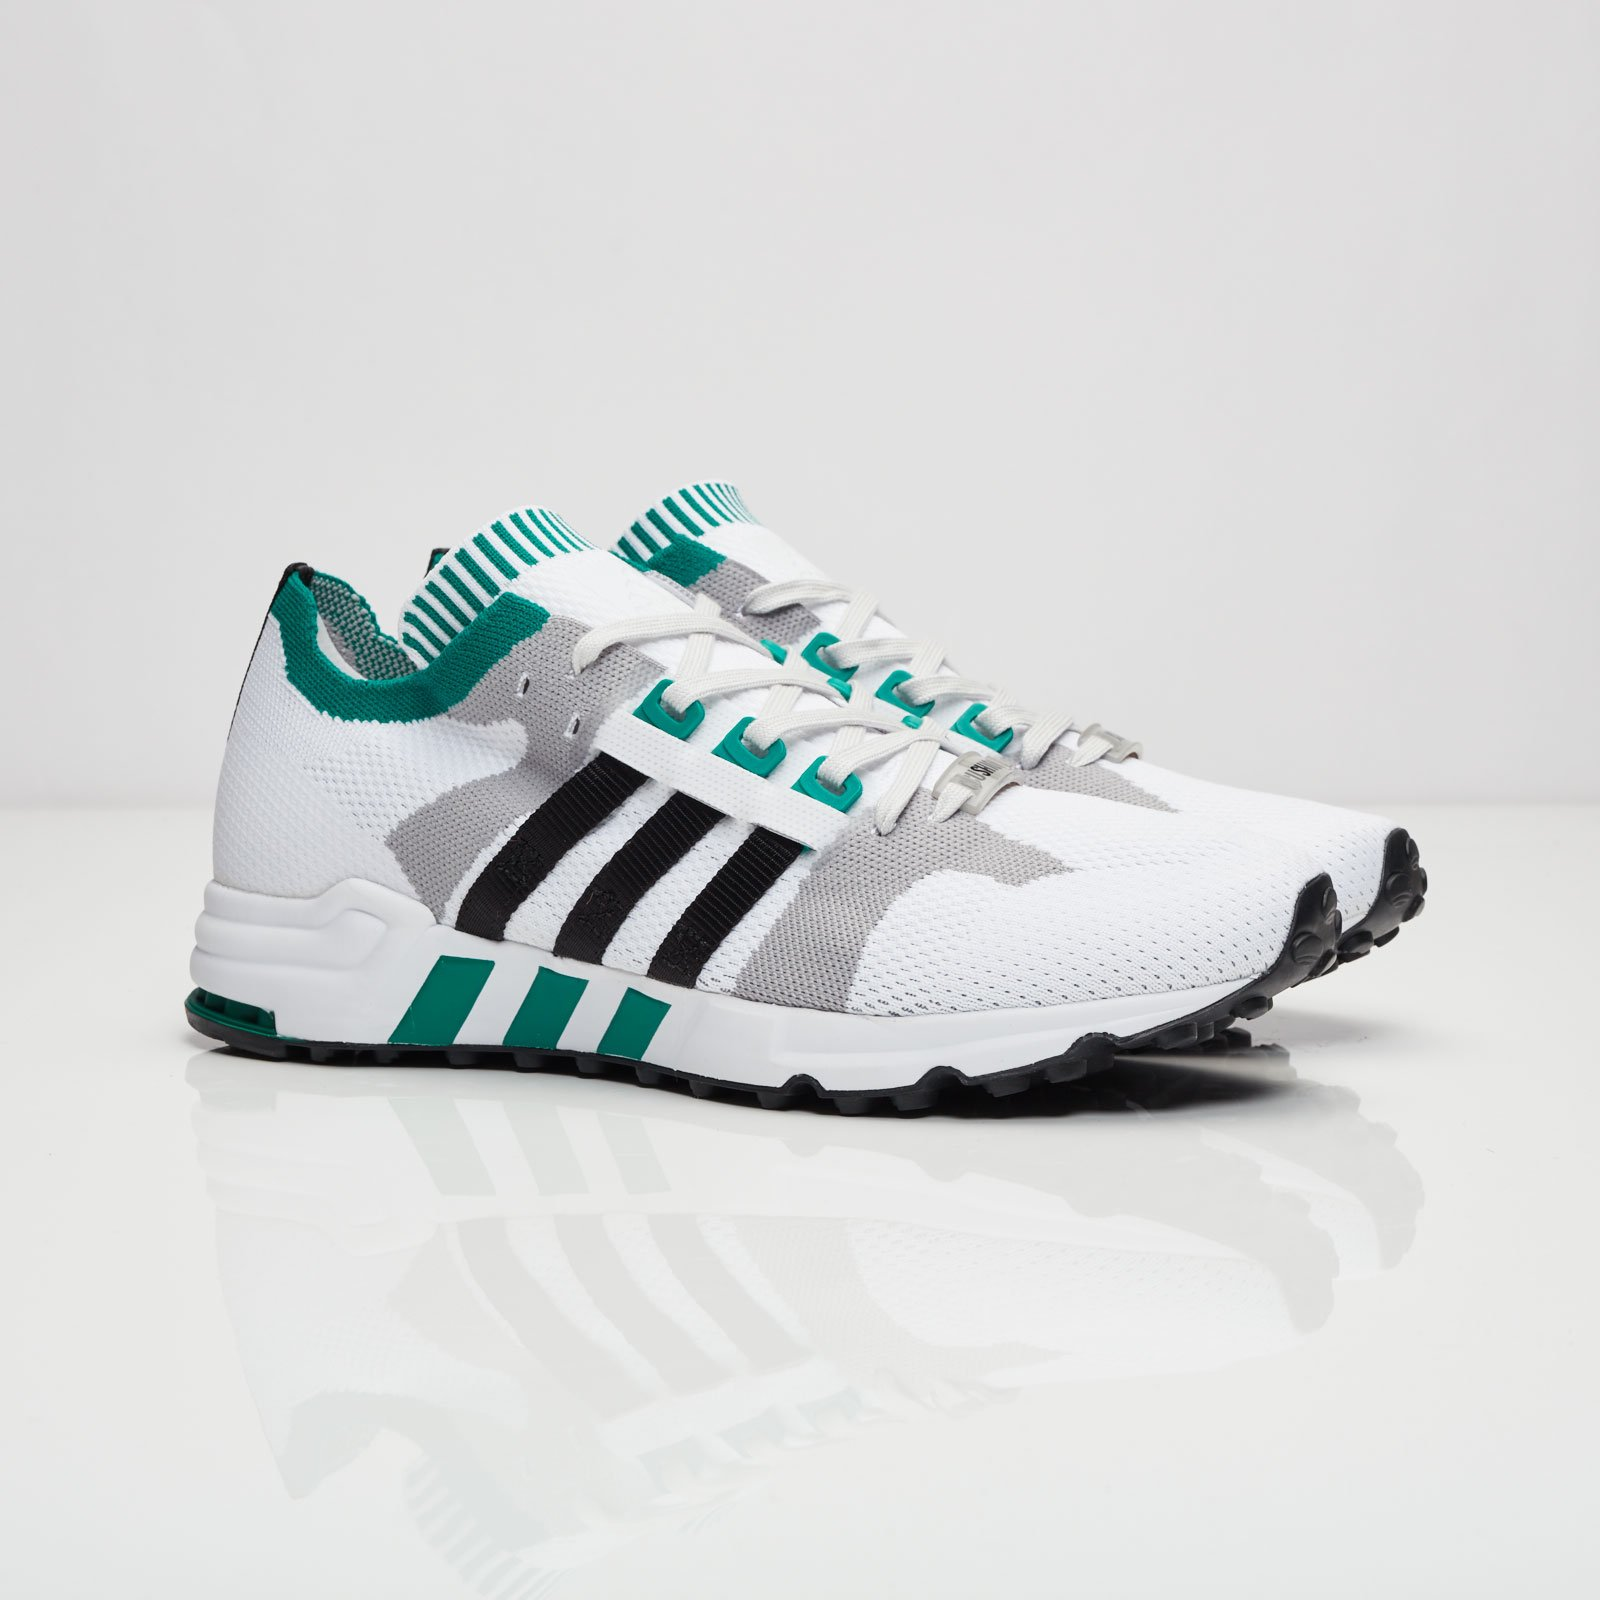 Adidas Equipment Cushion 93 Pk S79113 Sneakersnstuff Sneakers